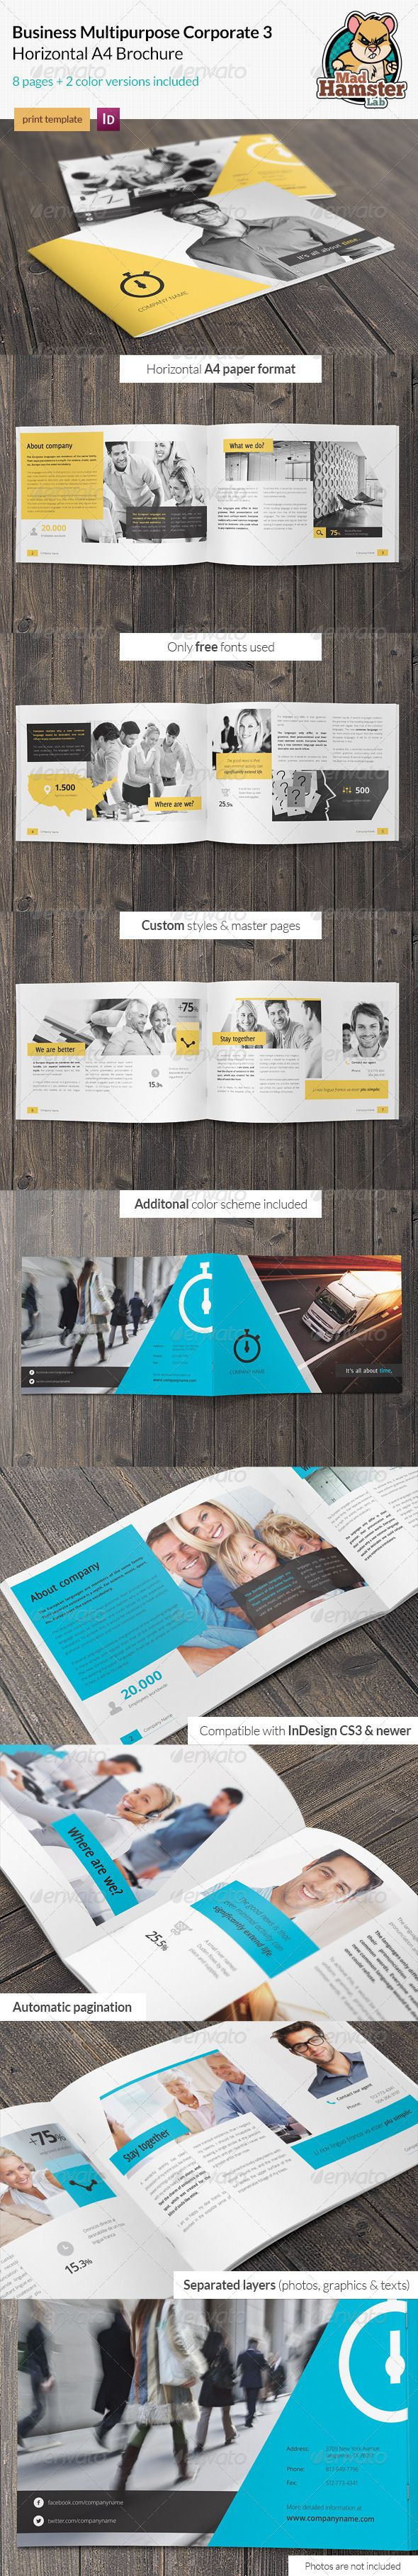 20 best brochure images on pinterest brochure design brochure